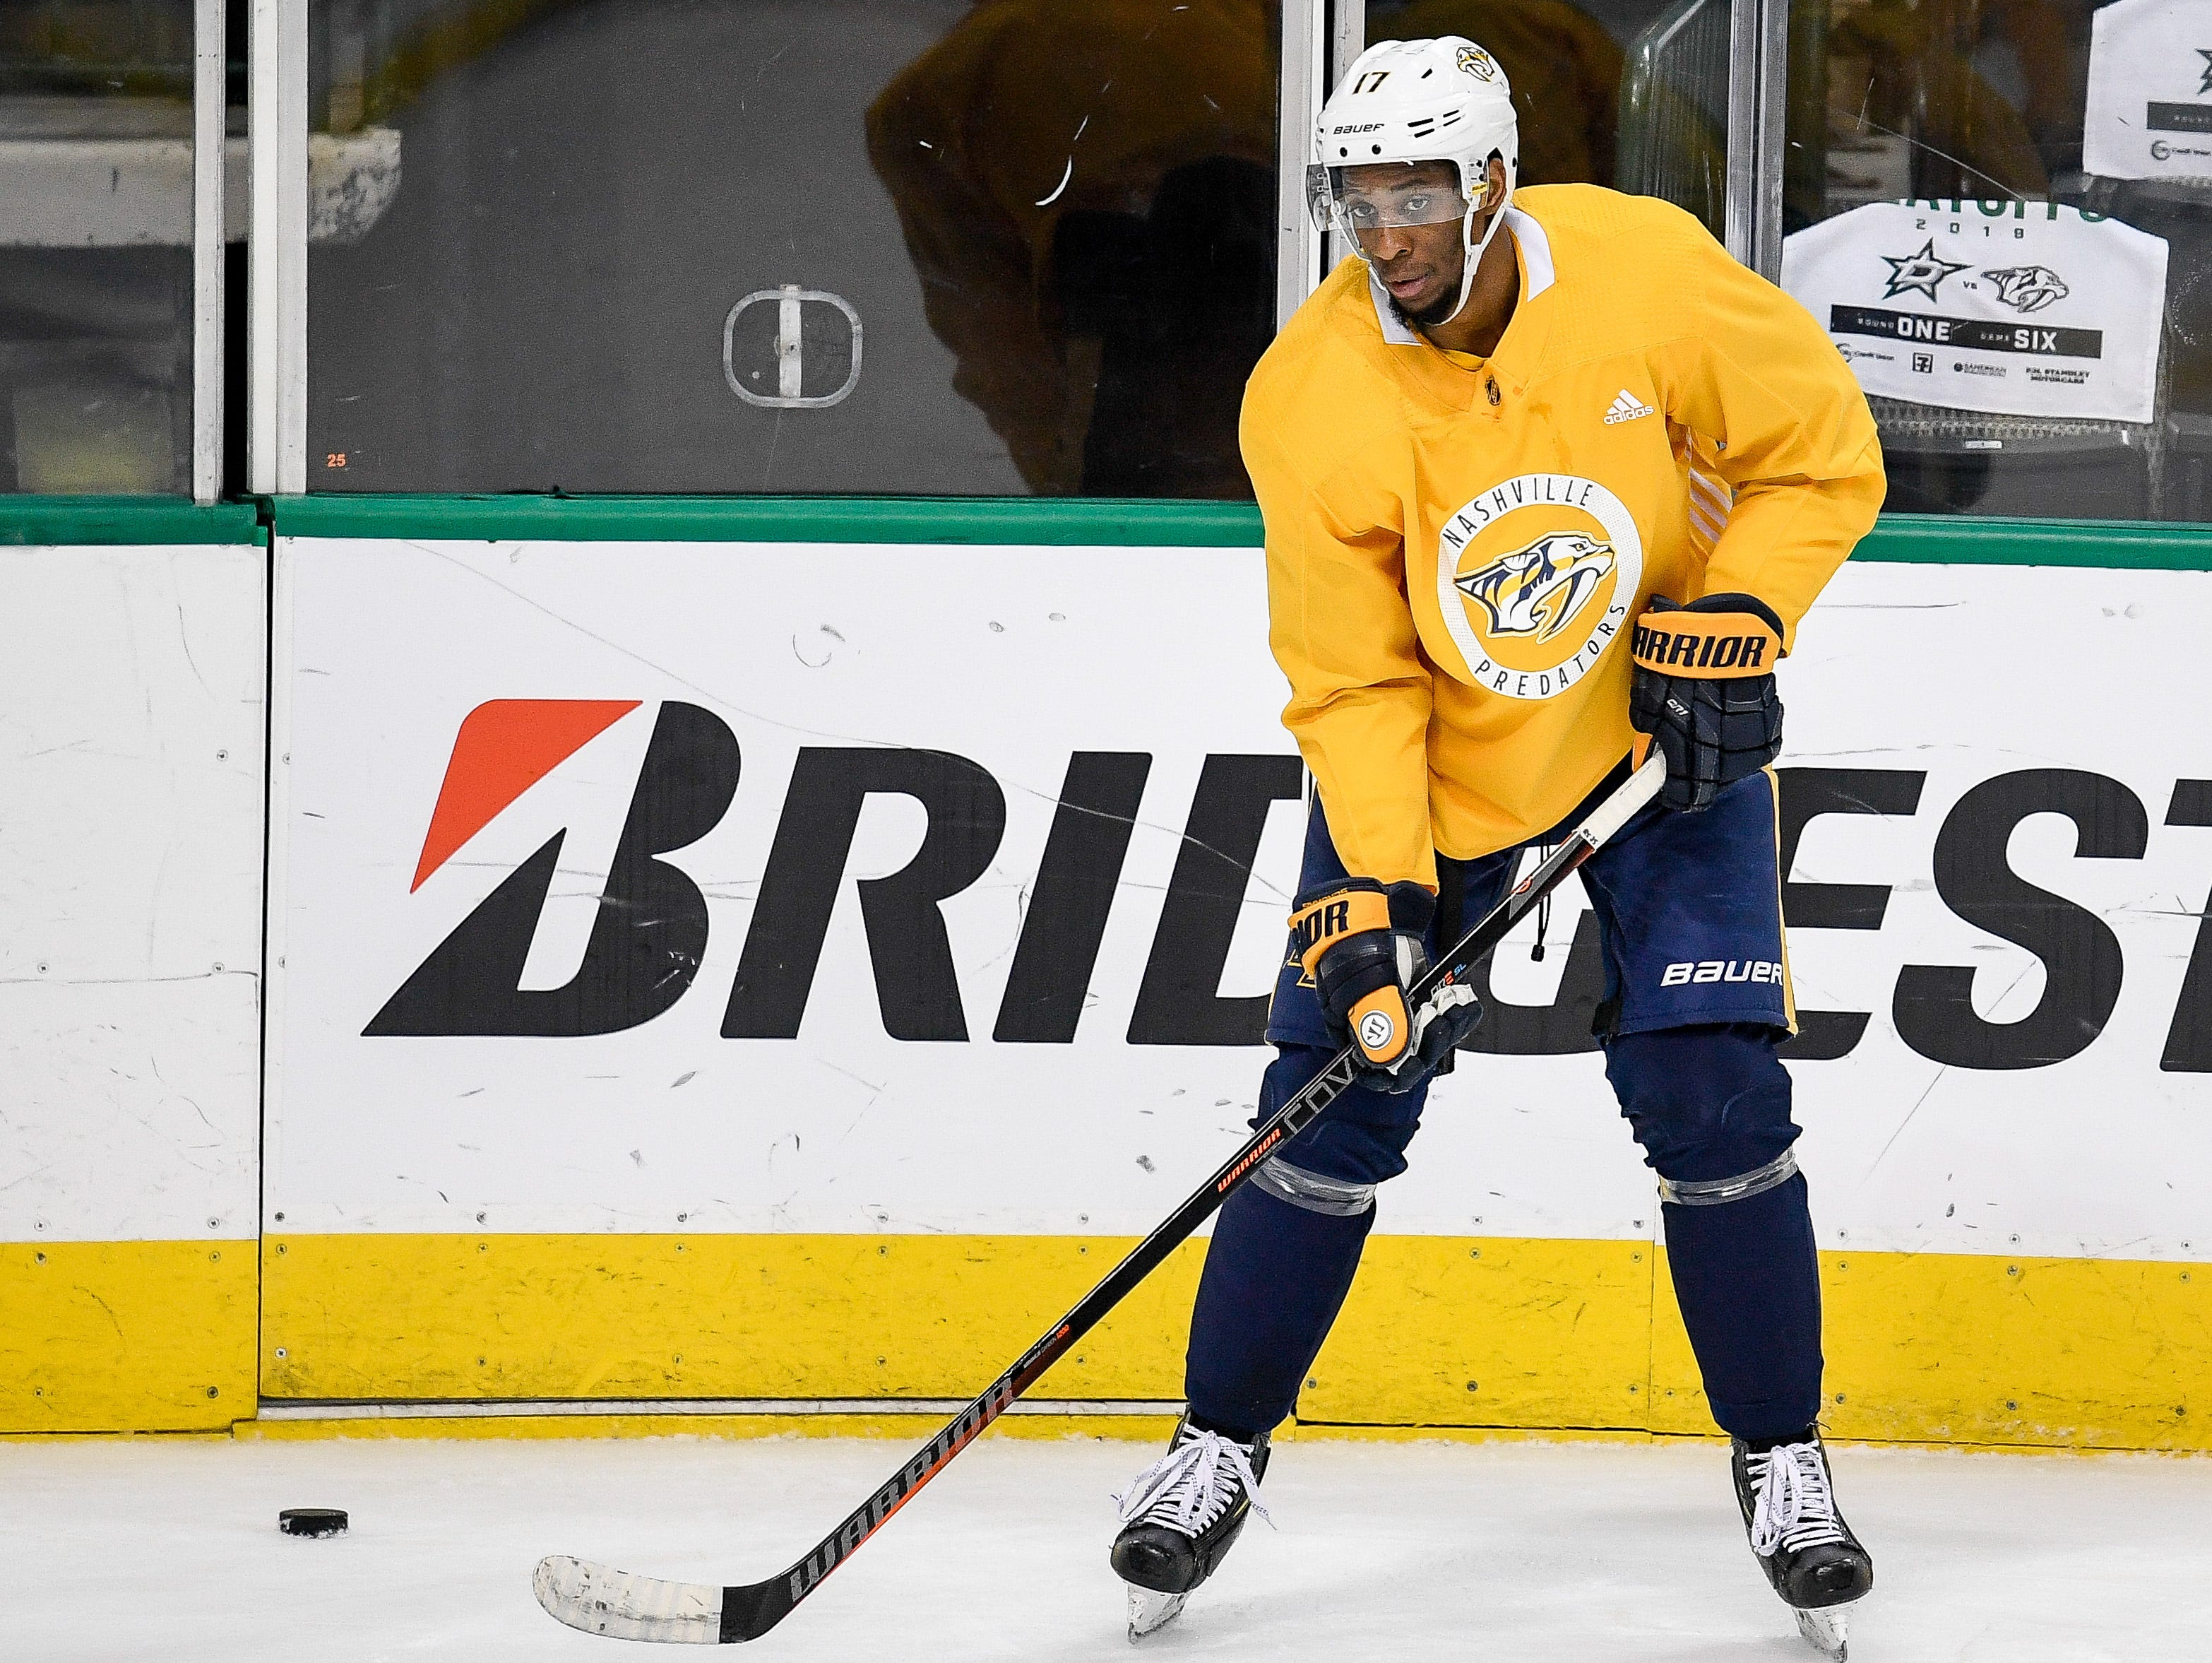 Nashville Predators right wing Wayne Simmonds (17) runs drills during practice before the divisional semifinal game against the Dallas Stars at the American Airlines Center in Dallas, Texas, Monday, April 22, 2019.